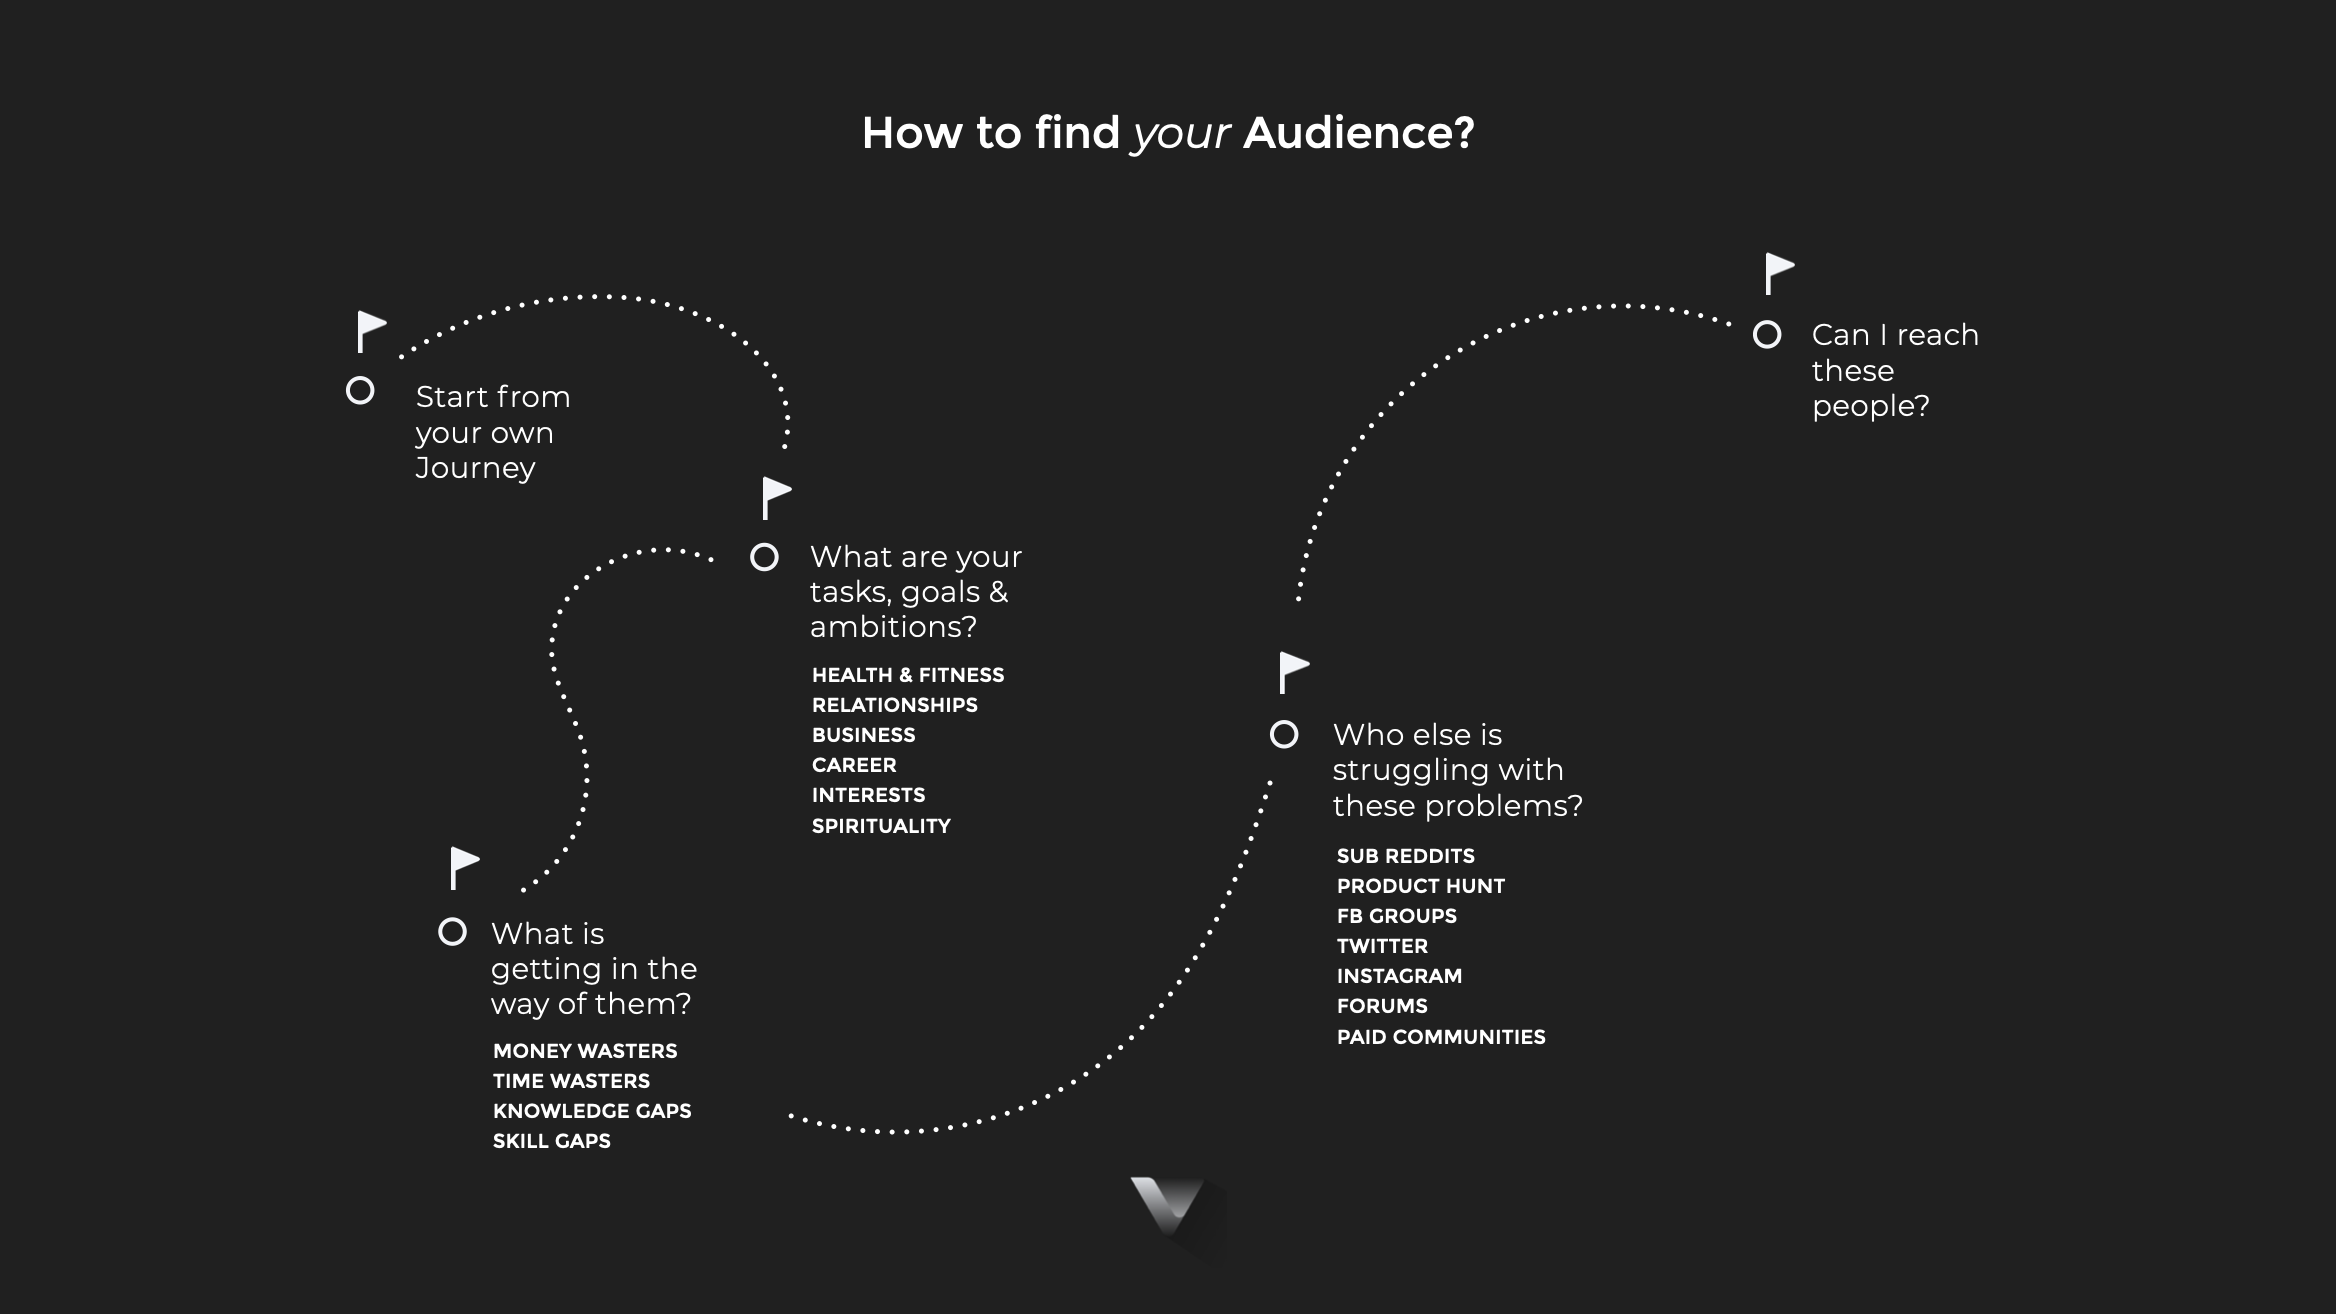 How to find your Audience? Start from your own Journey.